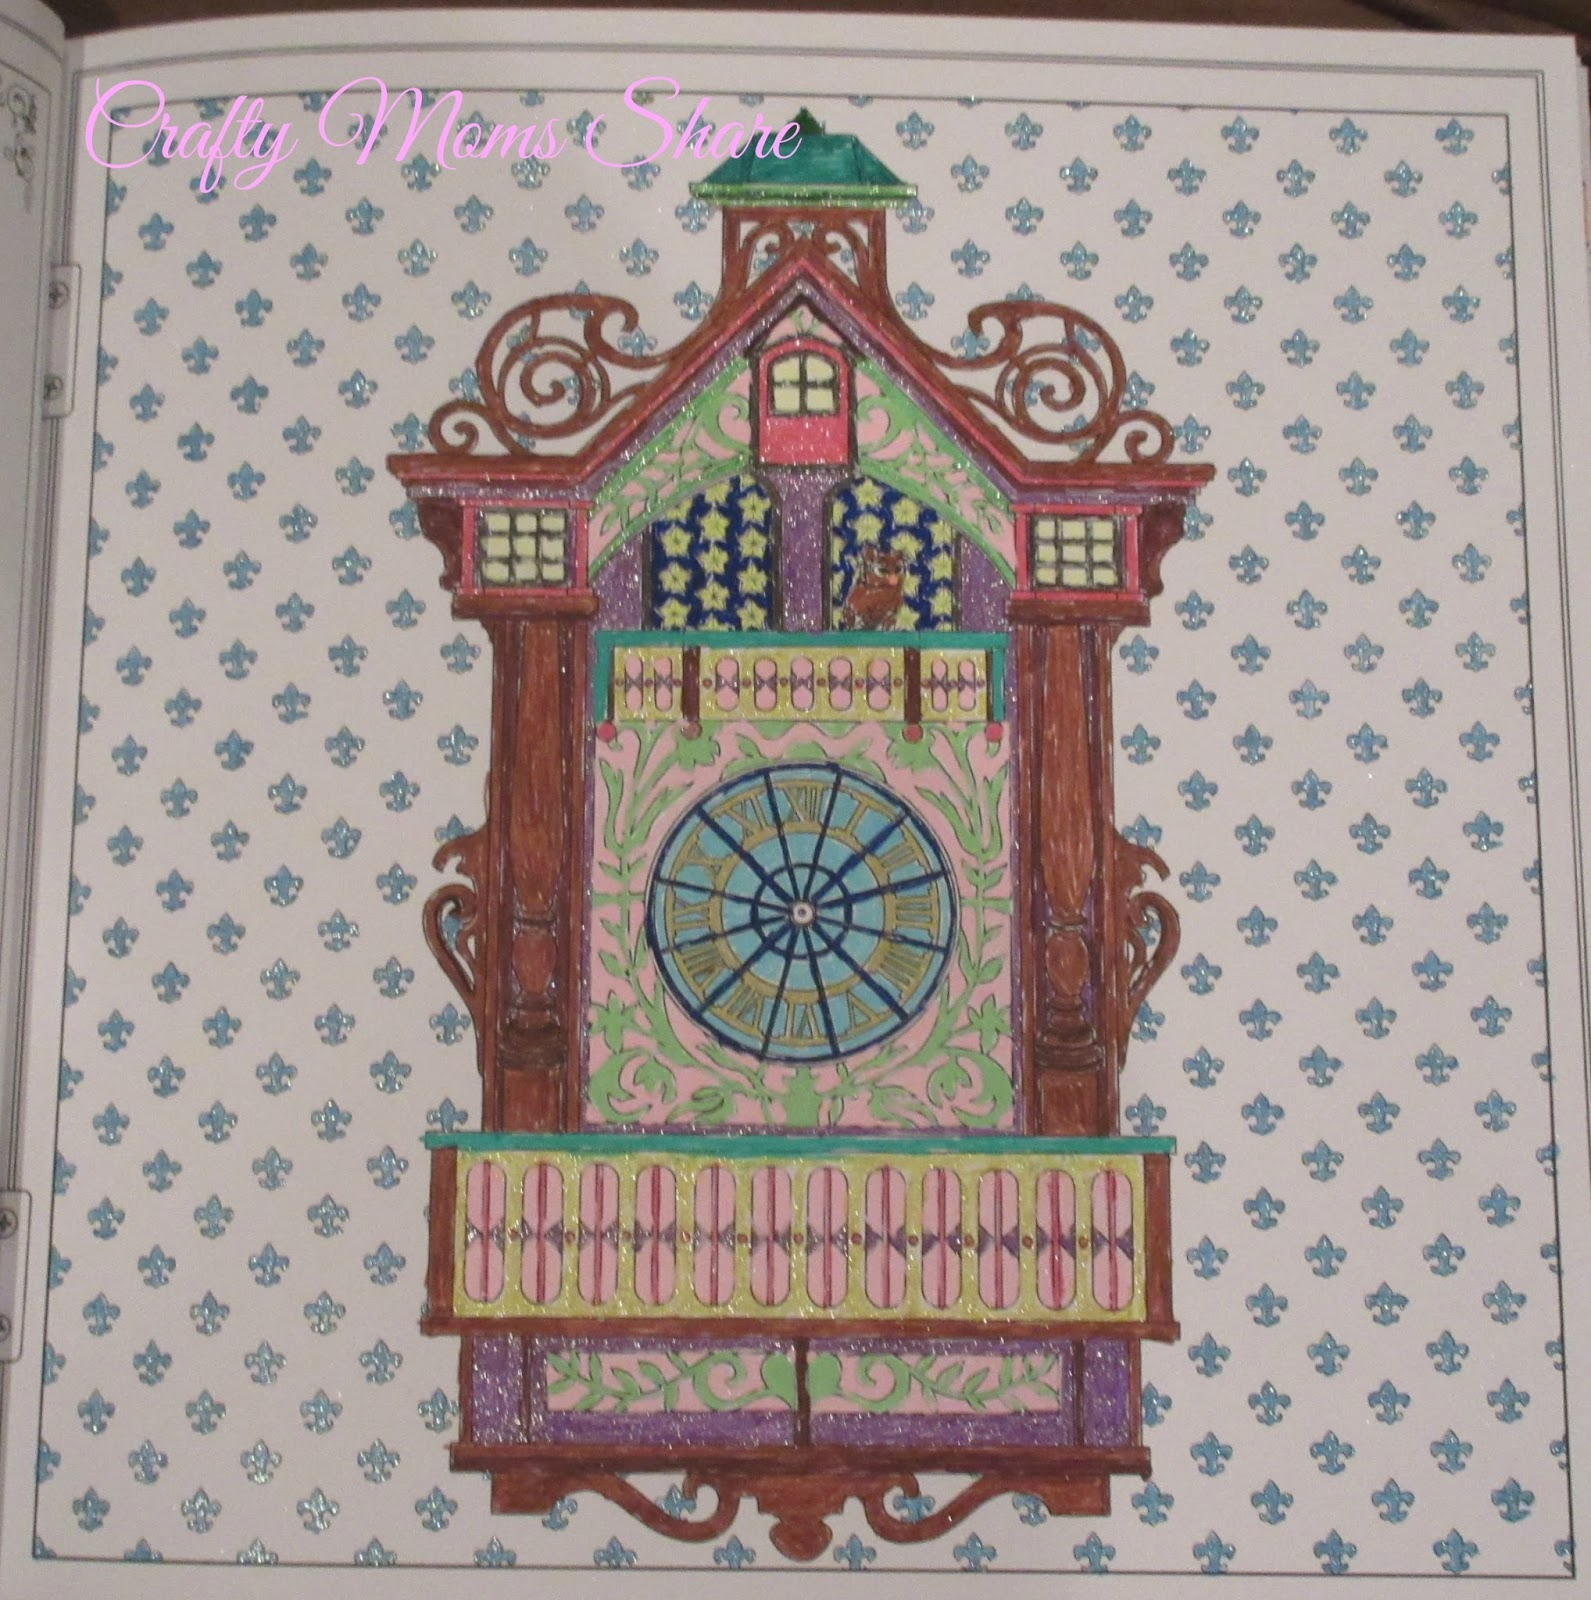 A Young Girl Gets Curious Of The New Cuckoo Clock And Ends Up Entering It After All Has Little Door Mine Is Red Once Inside Magic Begins